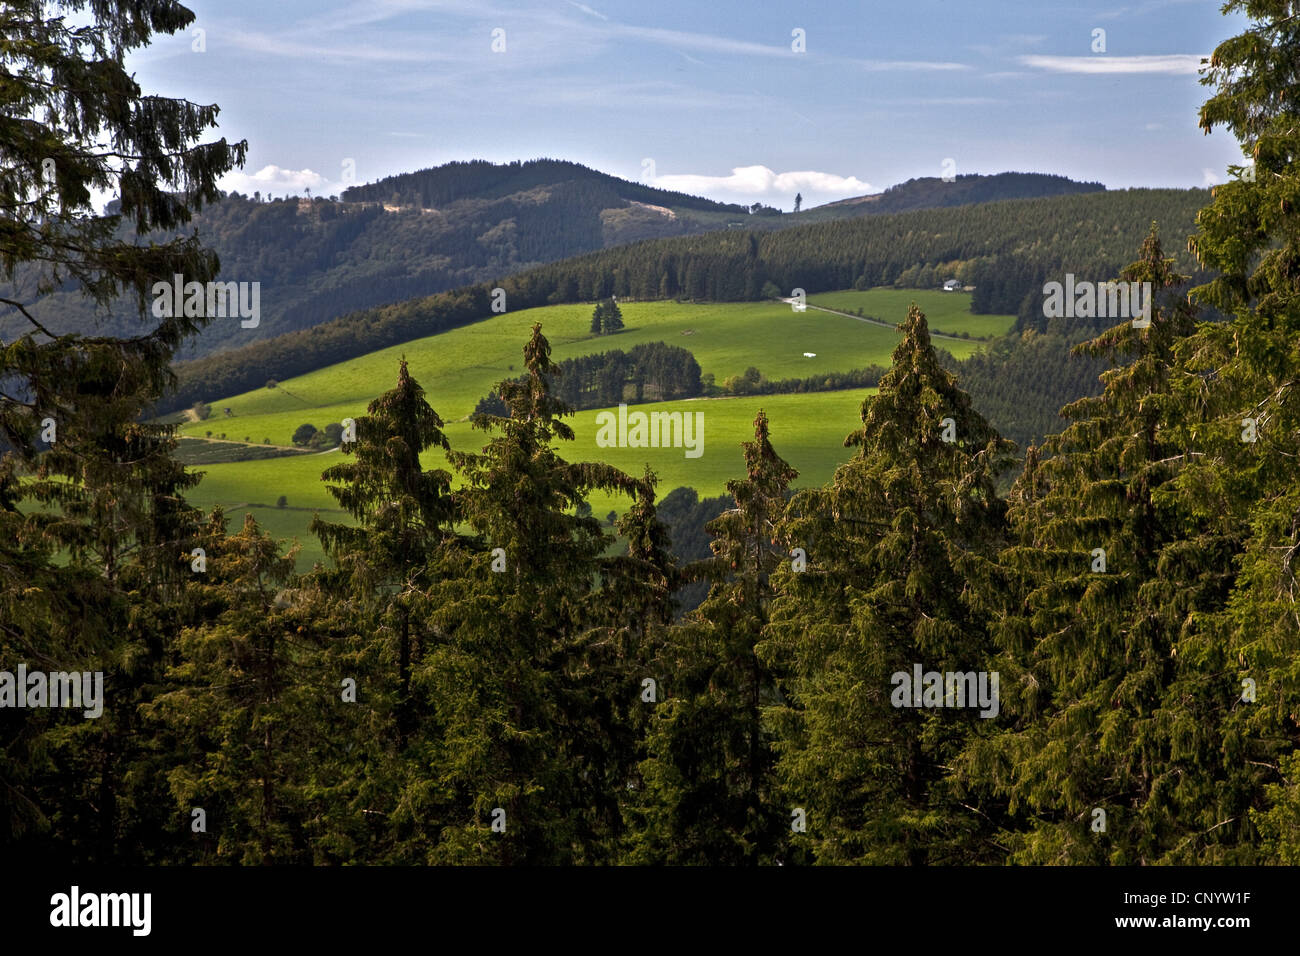 view of hilly landscapes from Bruchhauser Steine, Germany, North Rhine-Westphalia, Olsberg - Stock Image